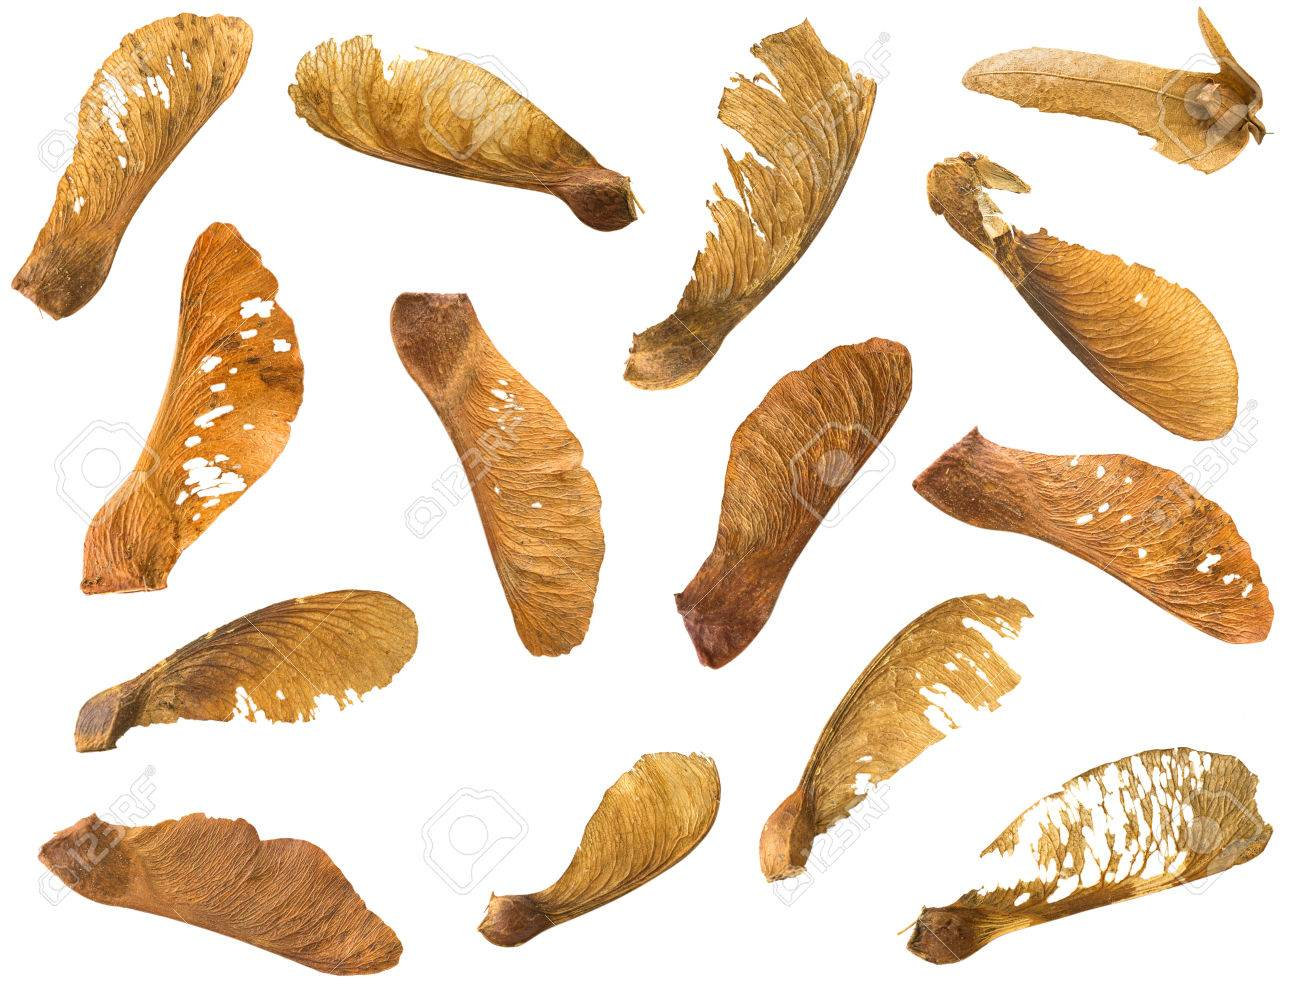 Many dried Sycamore Maple seed with natural fruit pod with wings